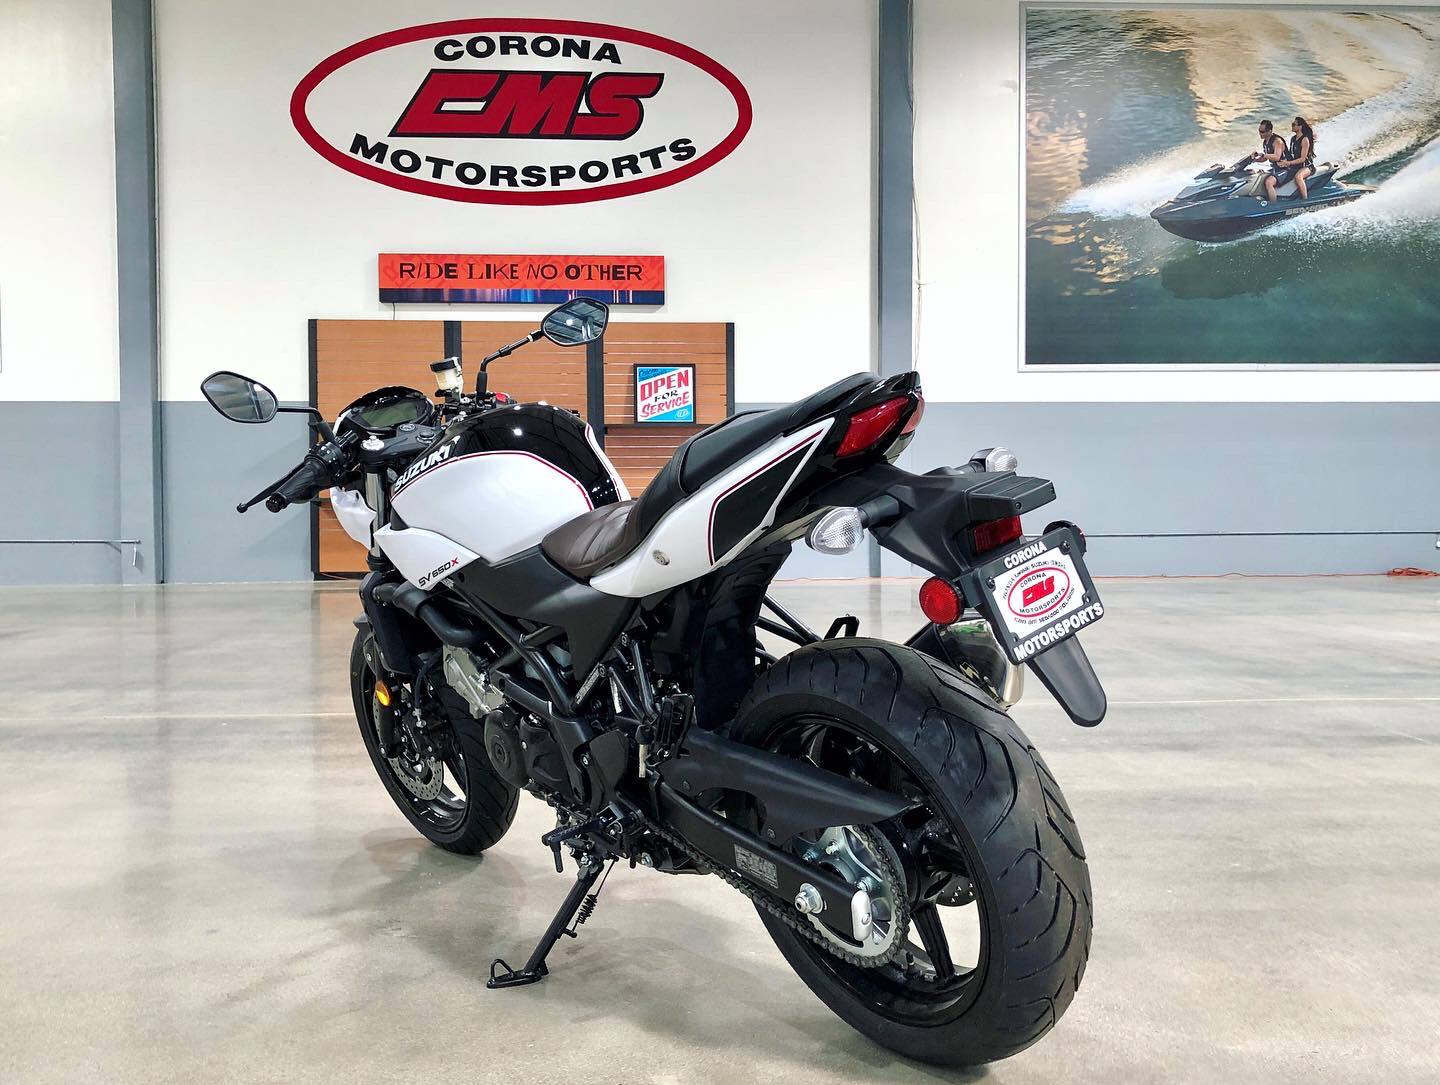 2019 Suzuki SV650X in Corona, California - Photo 3